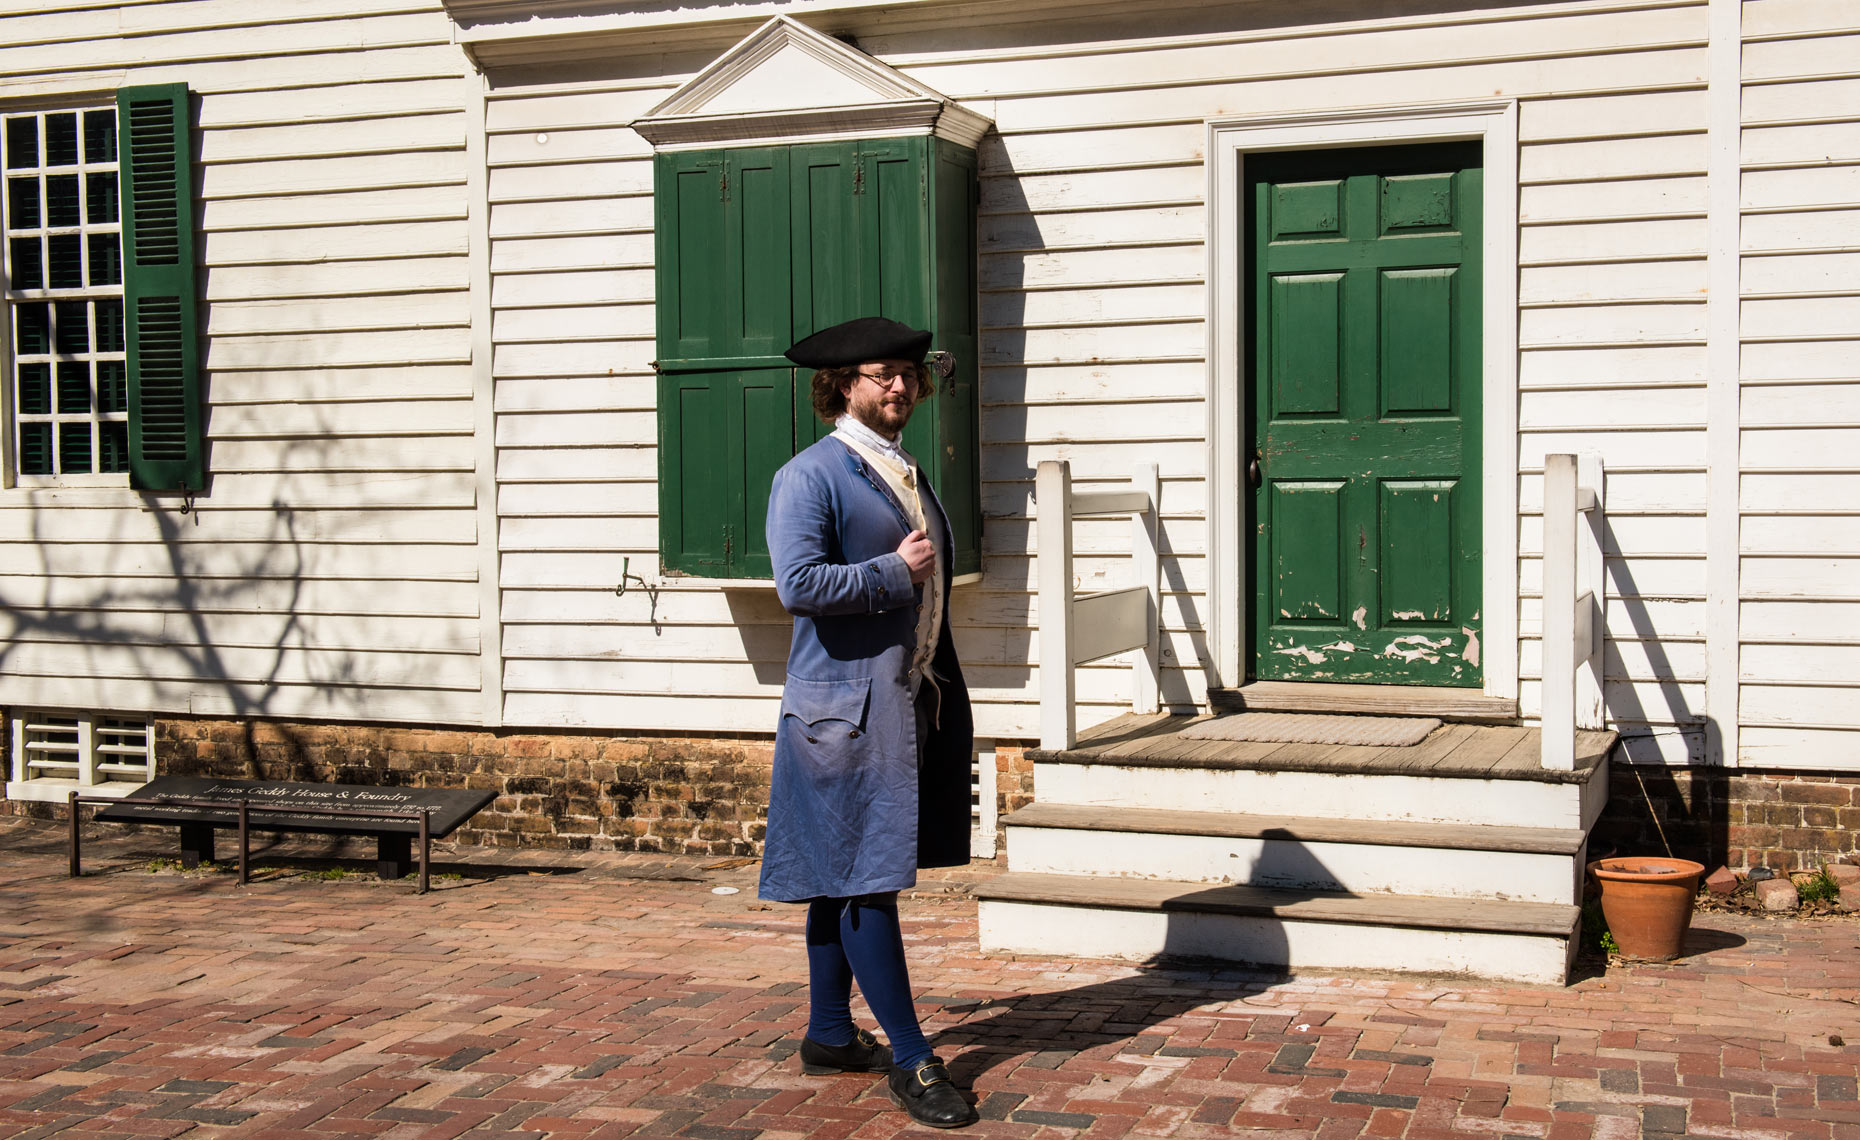 Colton-travel-photography-williamsburg-va-101